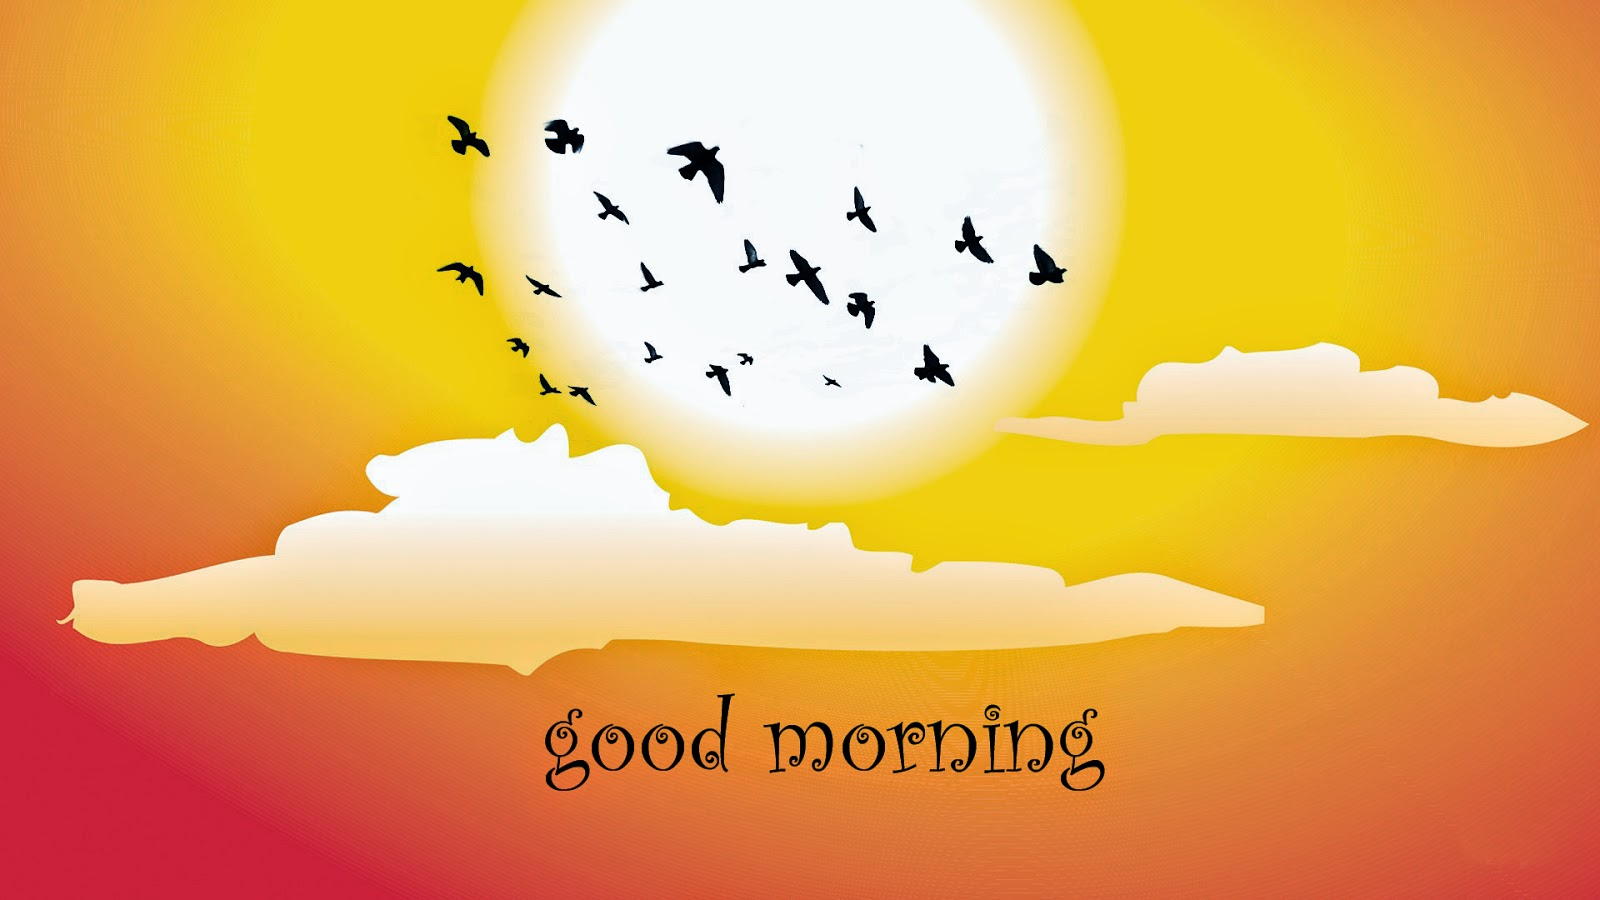 Good morning new HD Wishes photo image nice wallpaper